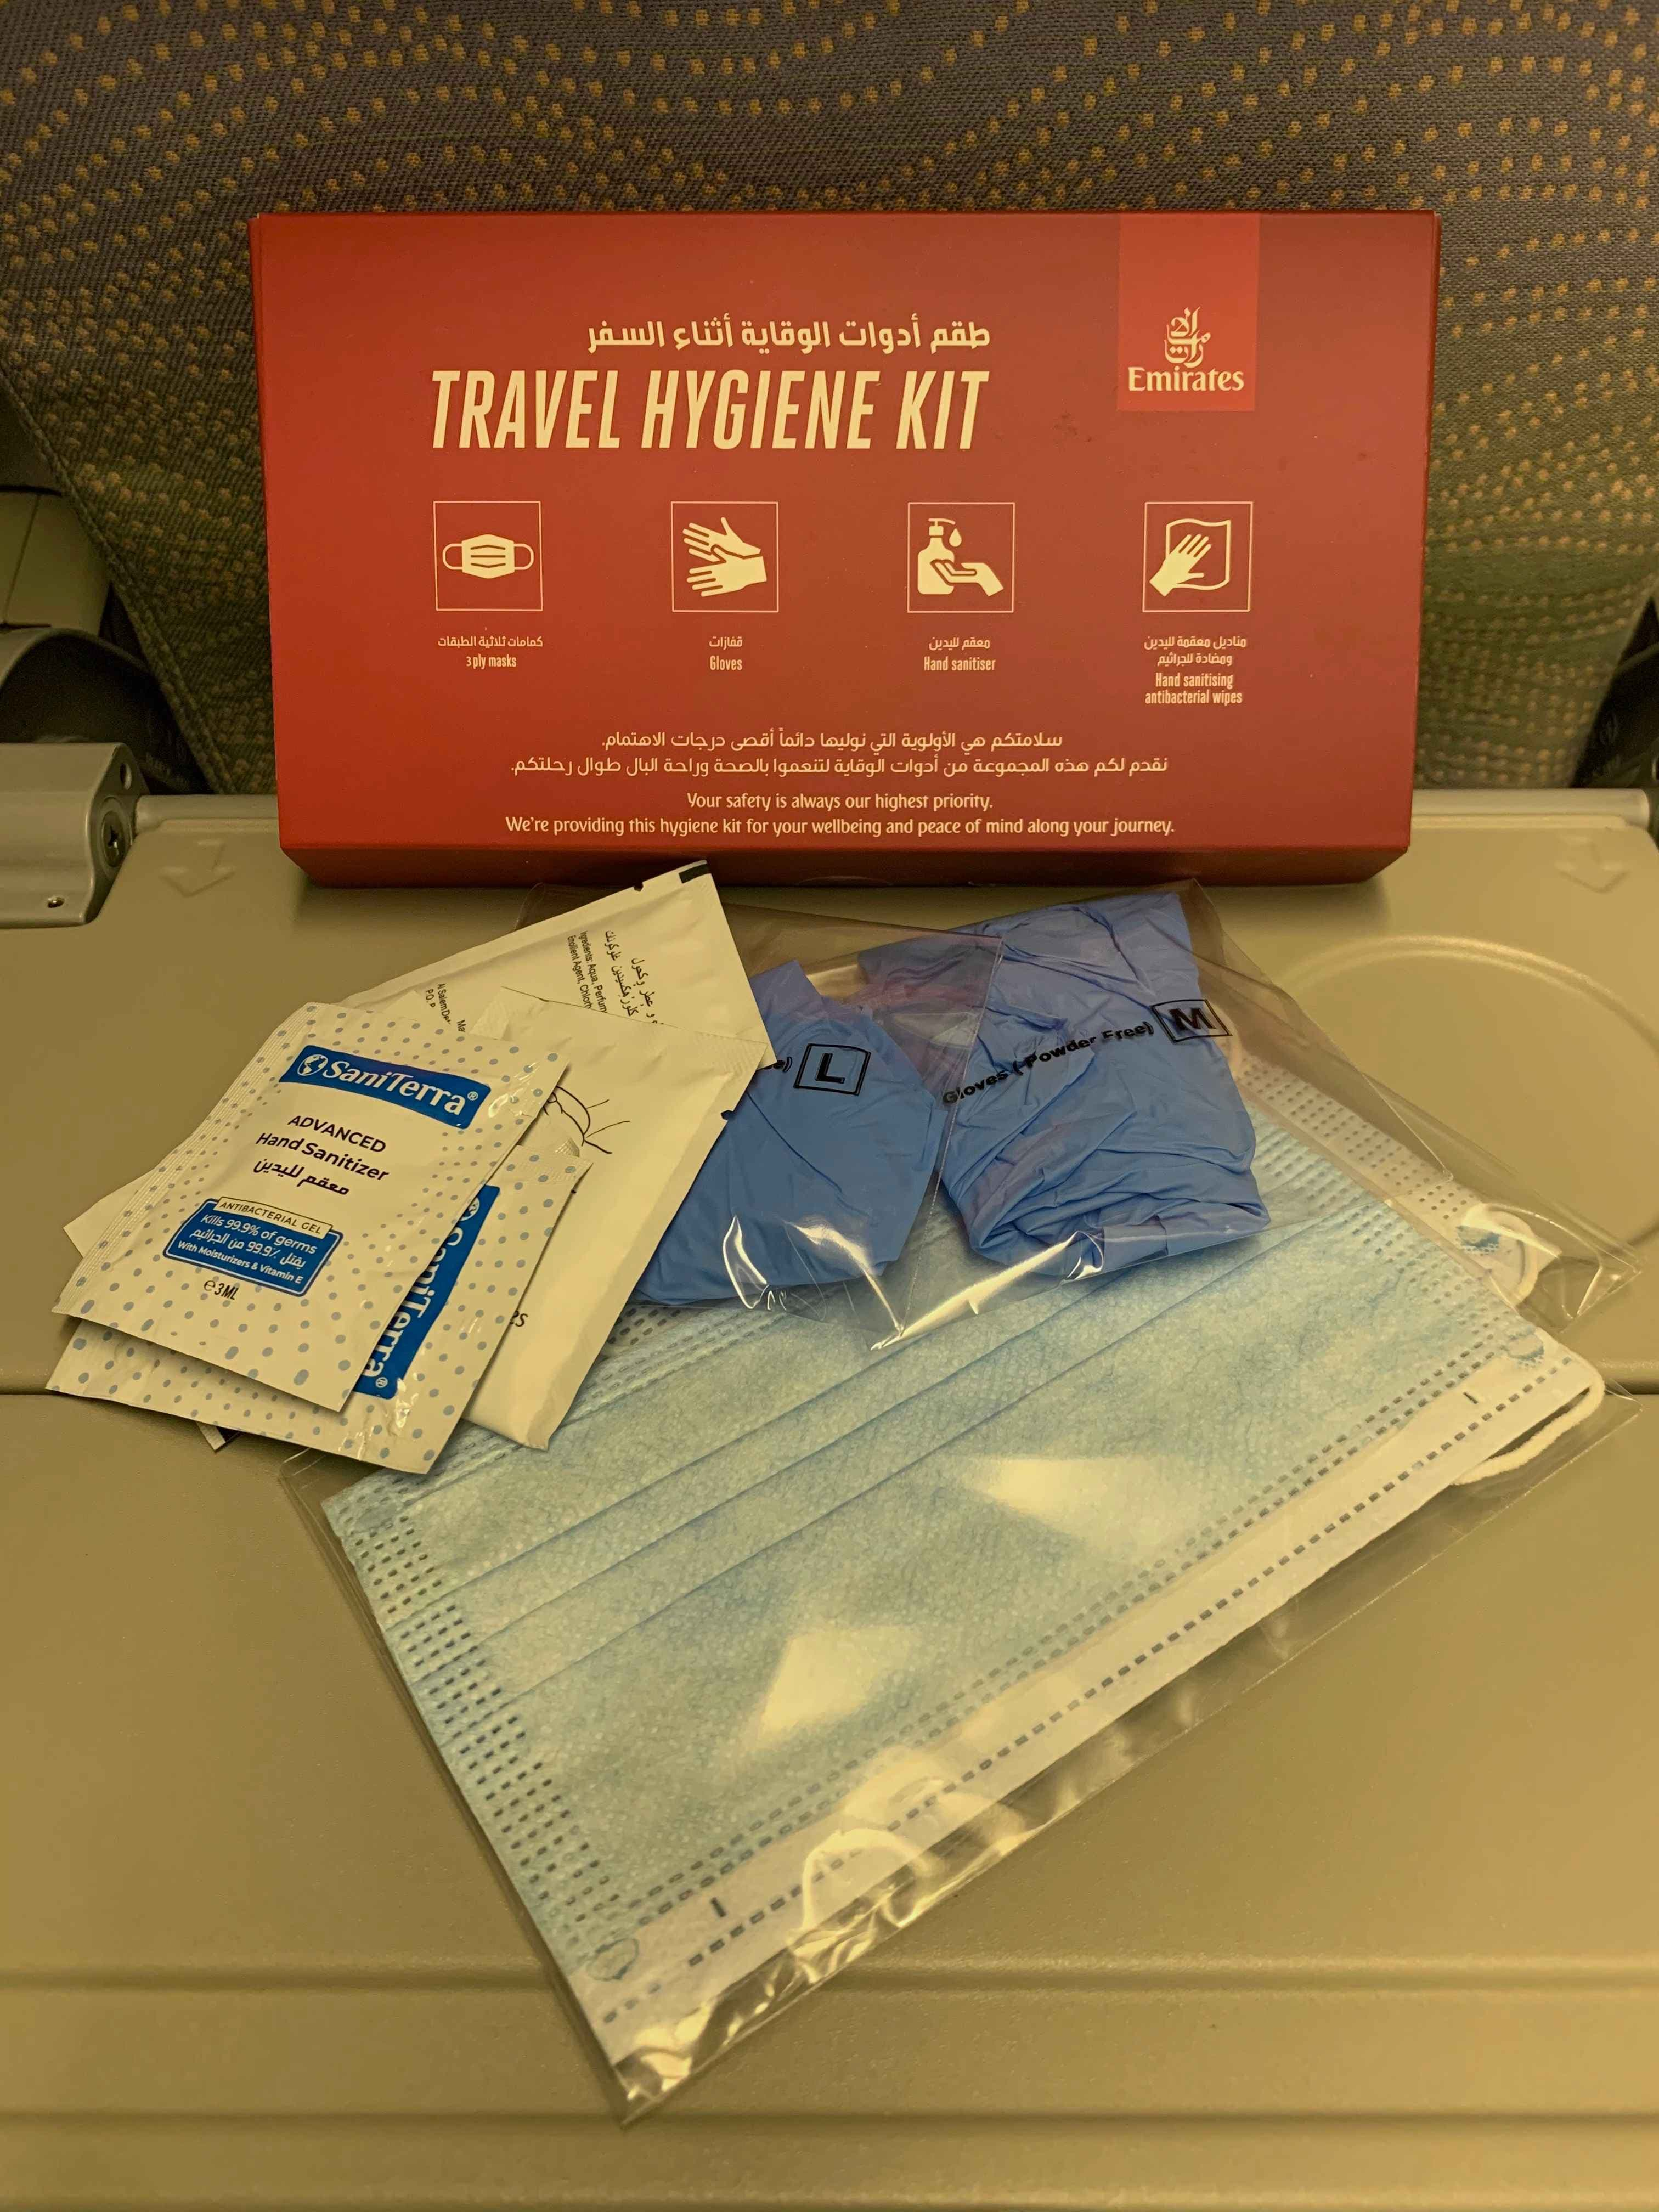 The first thing the Emirates crew hands out are the travel hygiene kits.